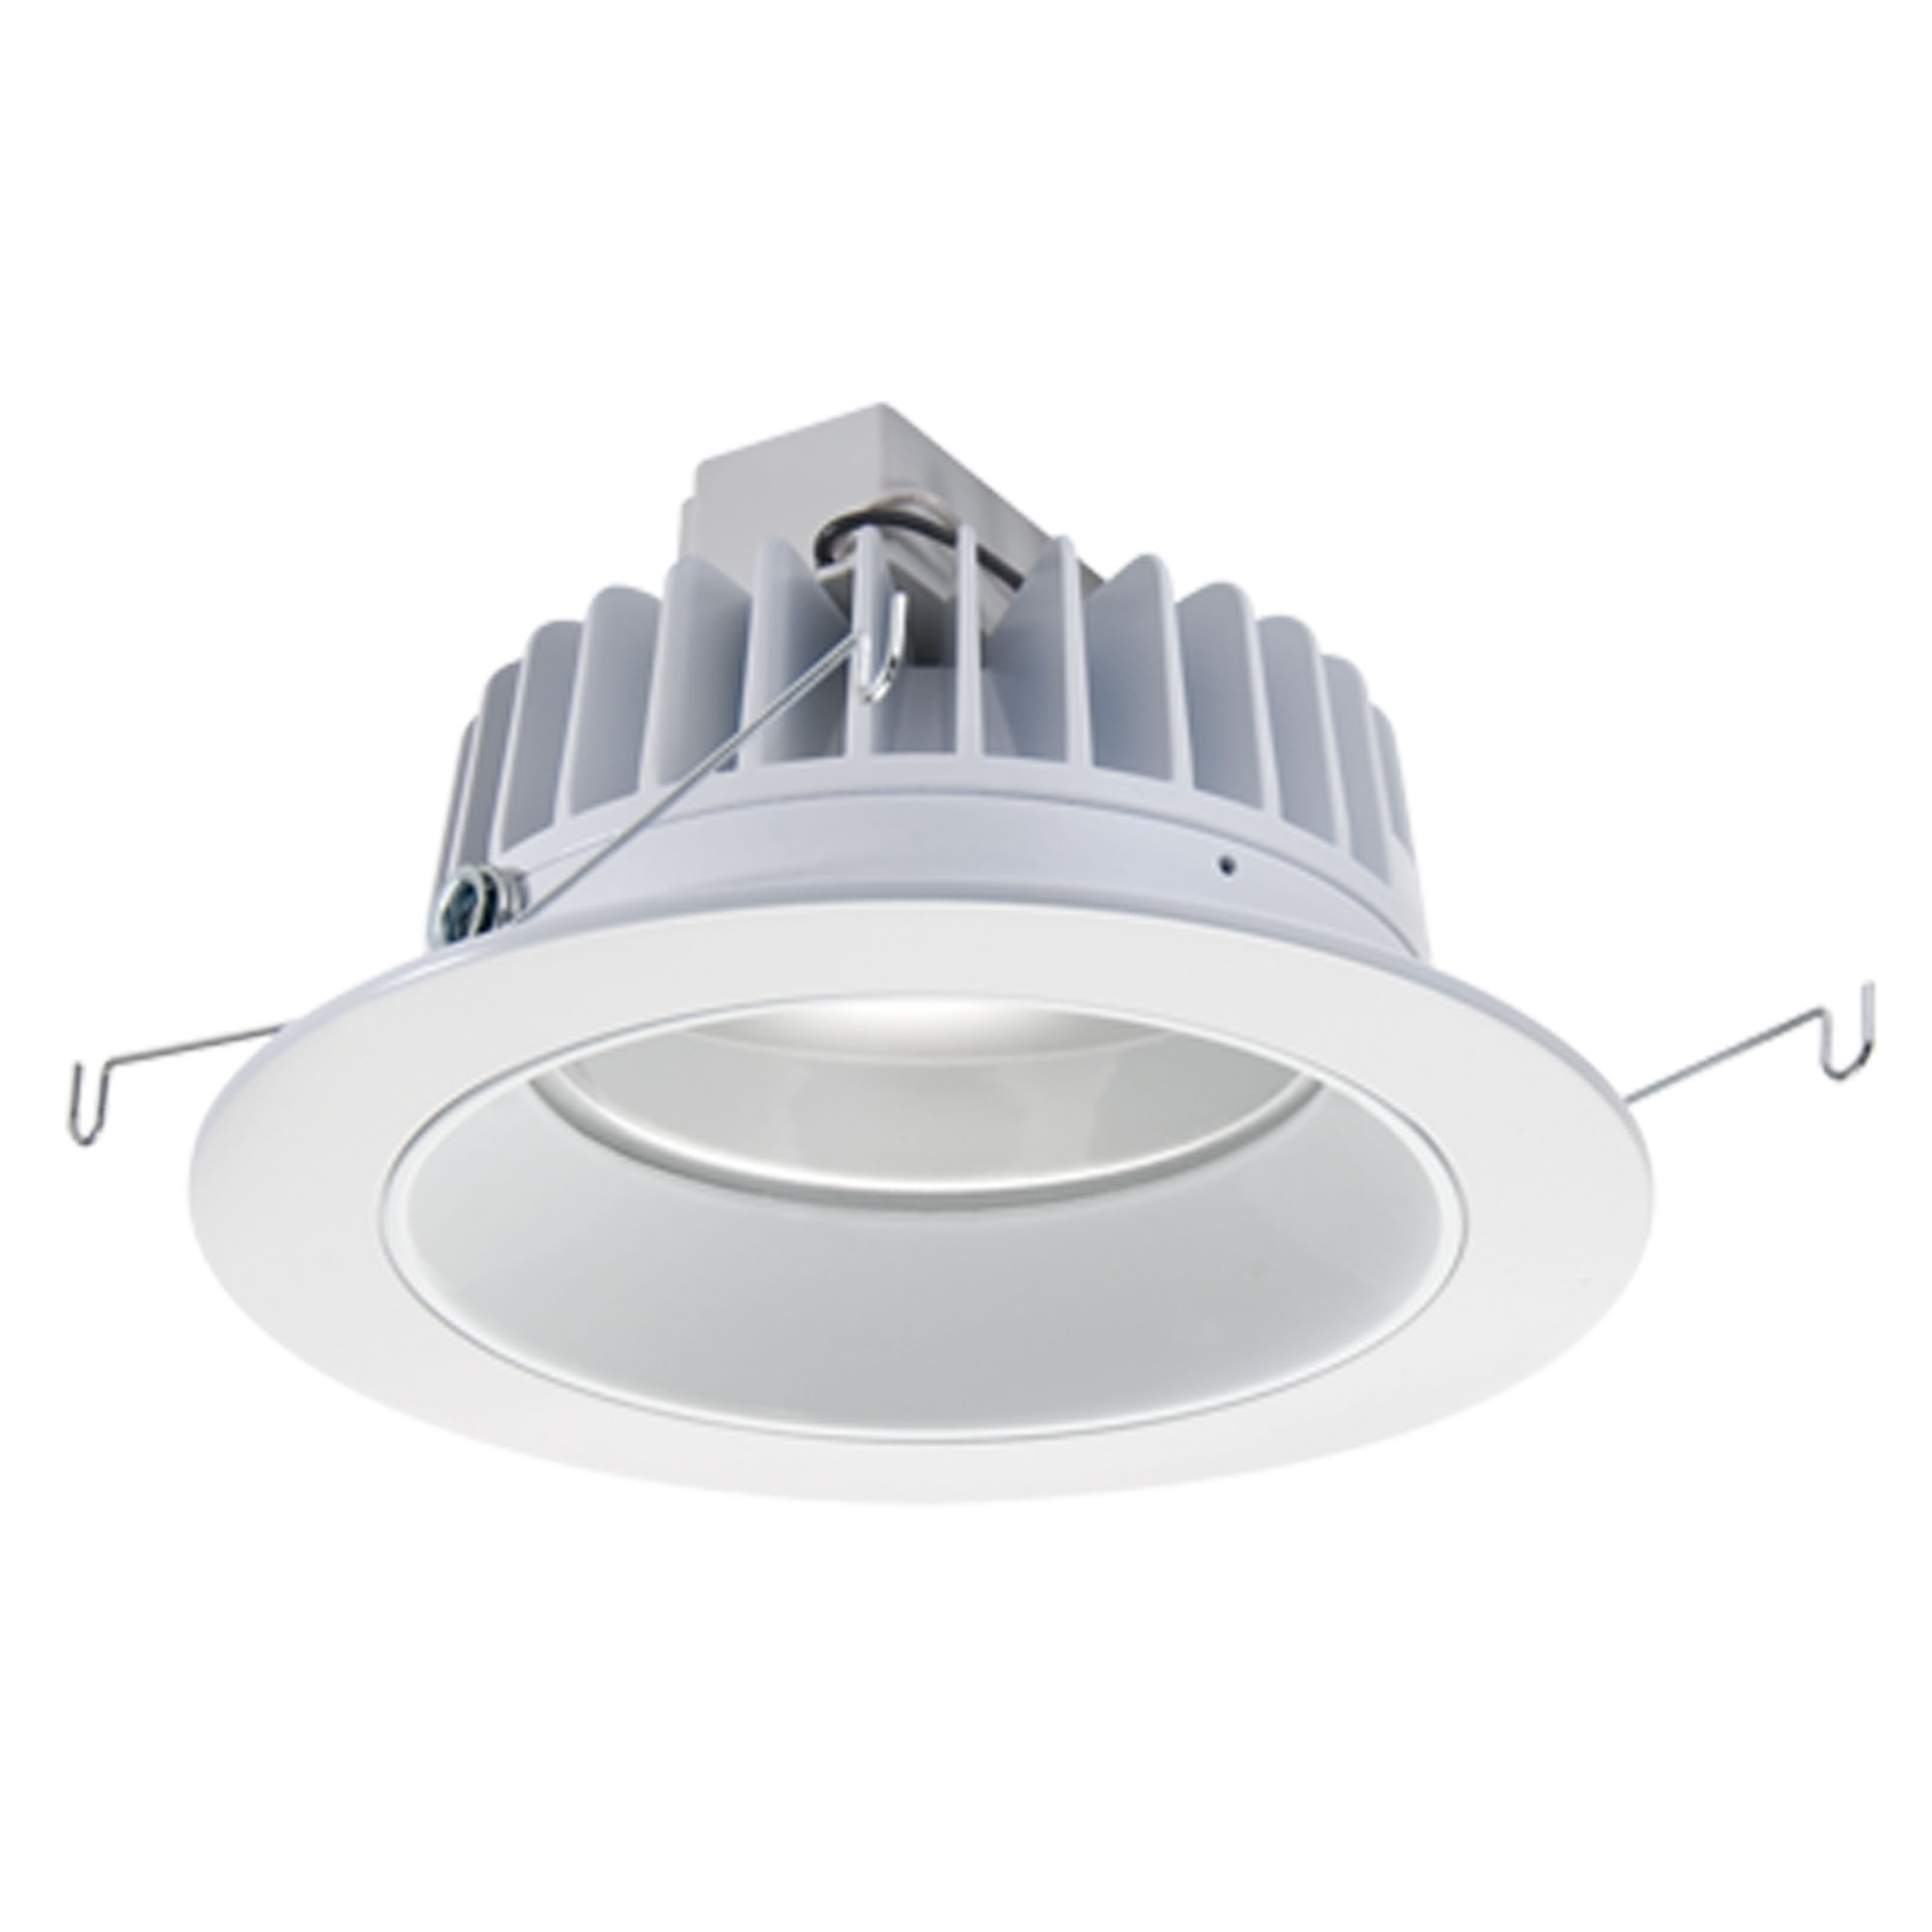 5 Series 650lm Retrofit Recessed Reflector By Elite Led Lighting 848070075241